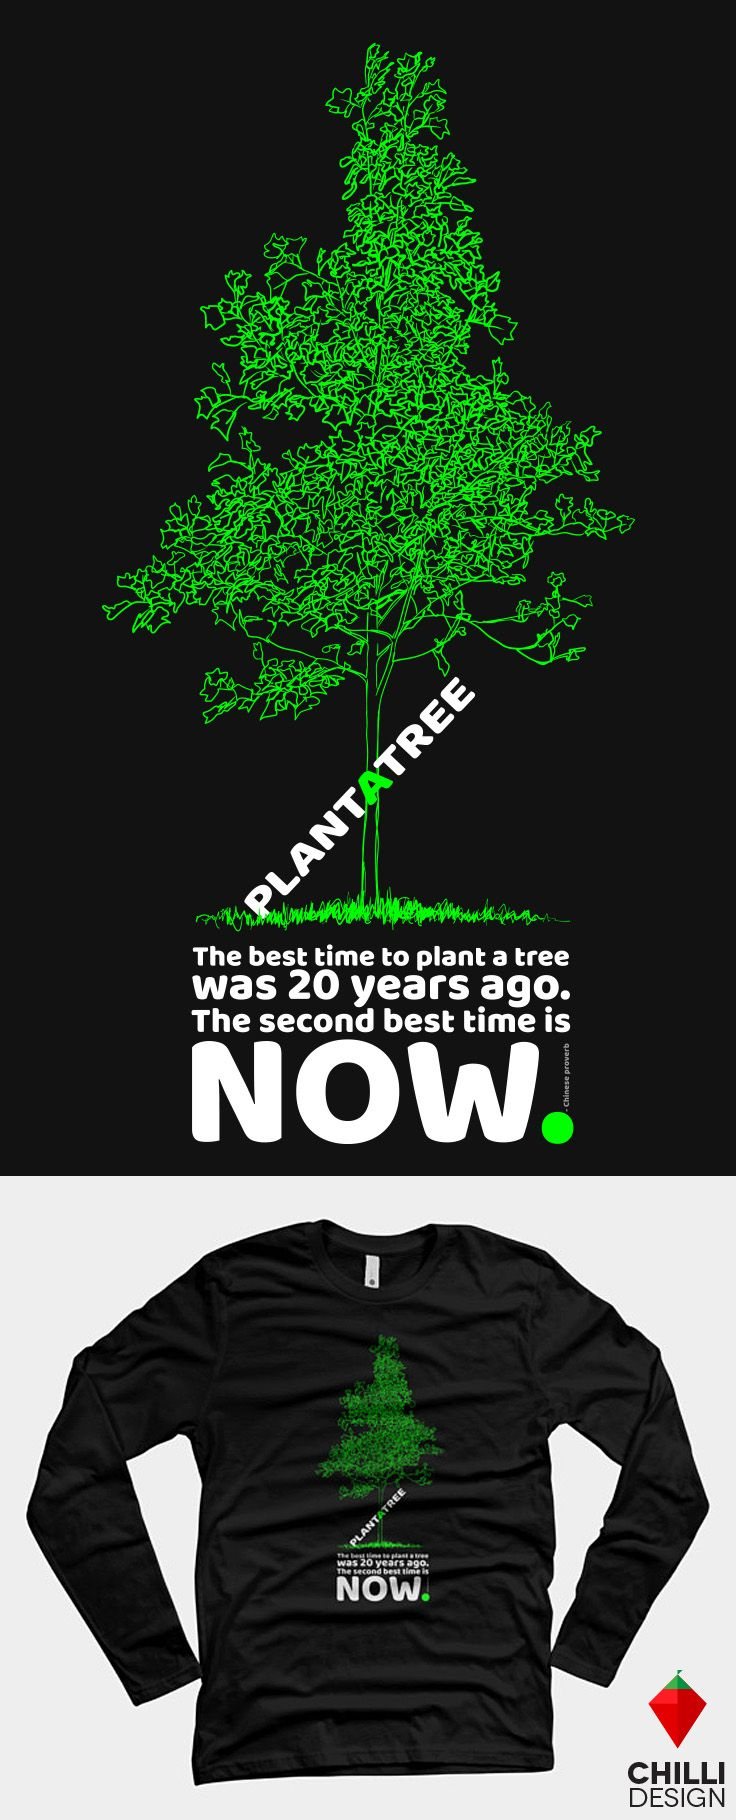 Trendy Environmental T Shirt Design With Slogan Plant A Tree And